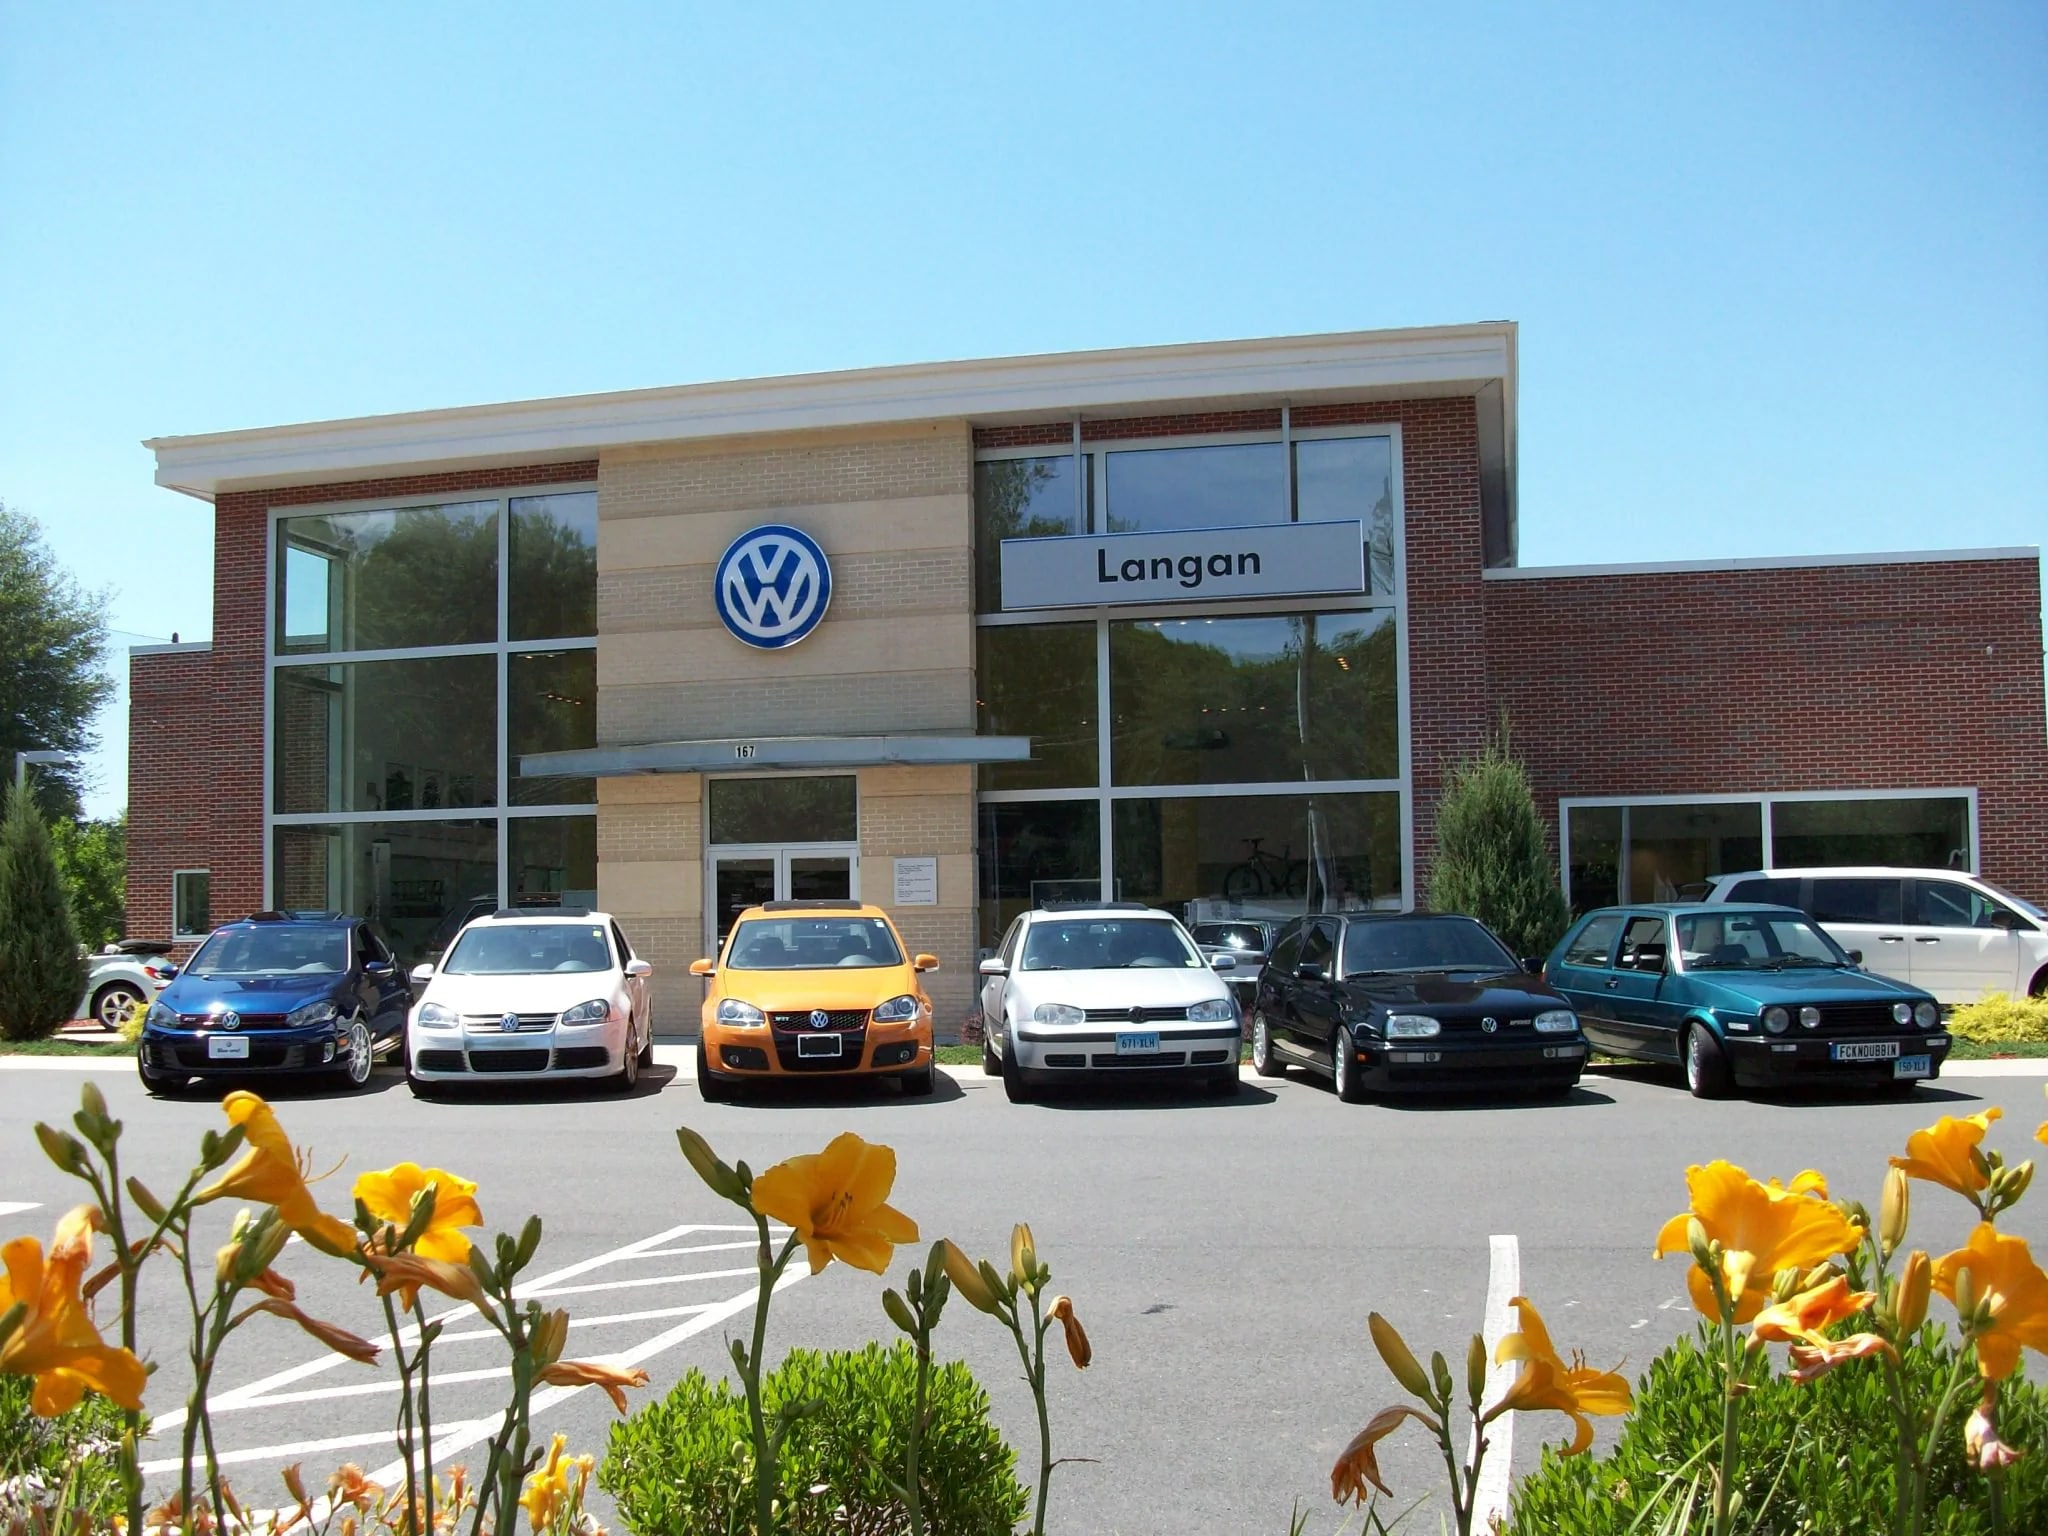 Langan Volkswagen Of Vernon Llc Vw Dealership In Vernon Ct